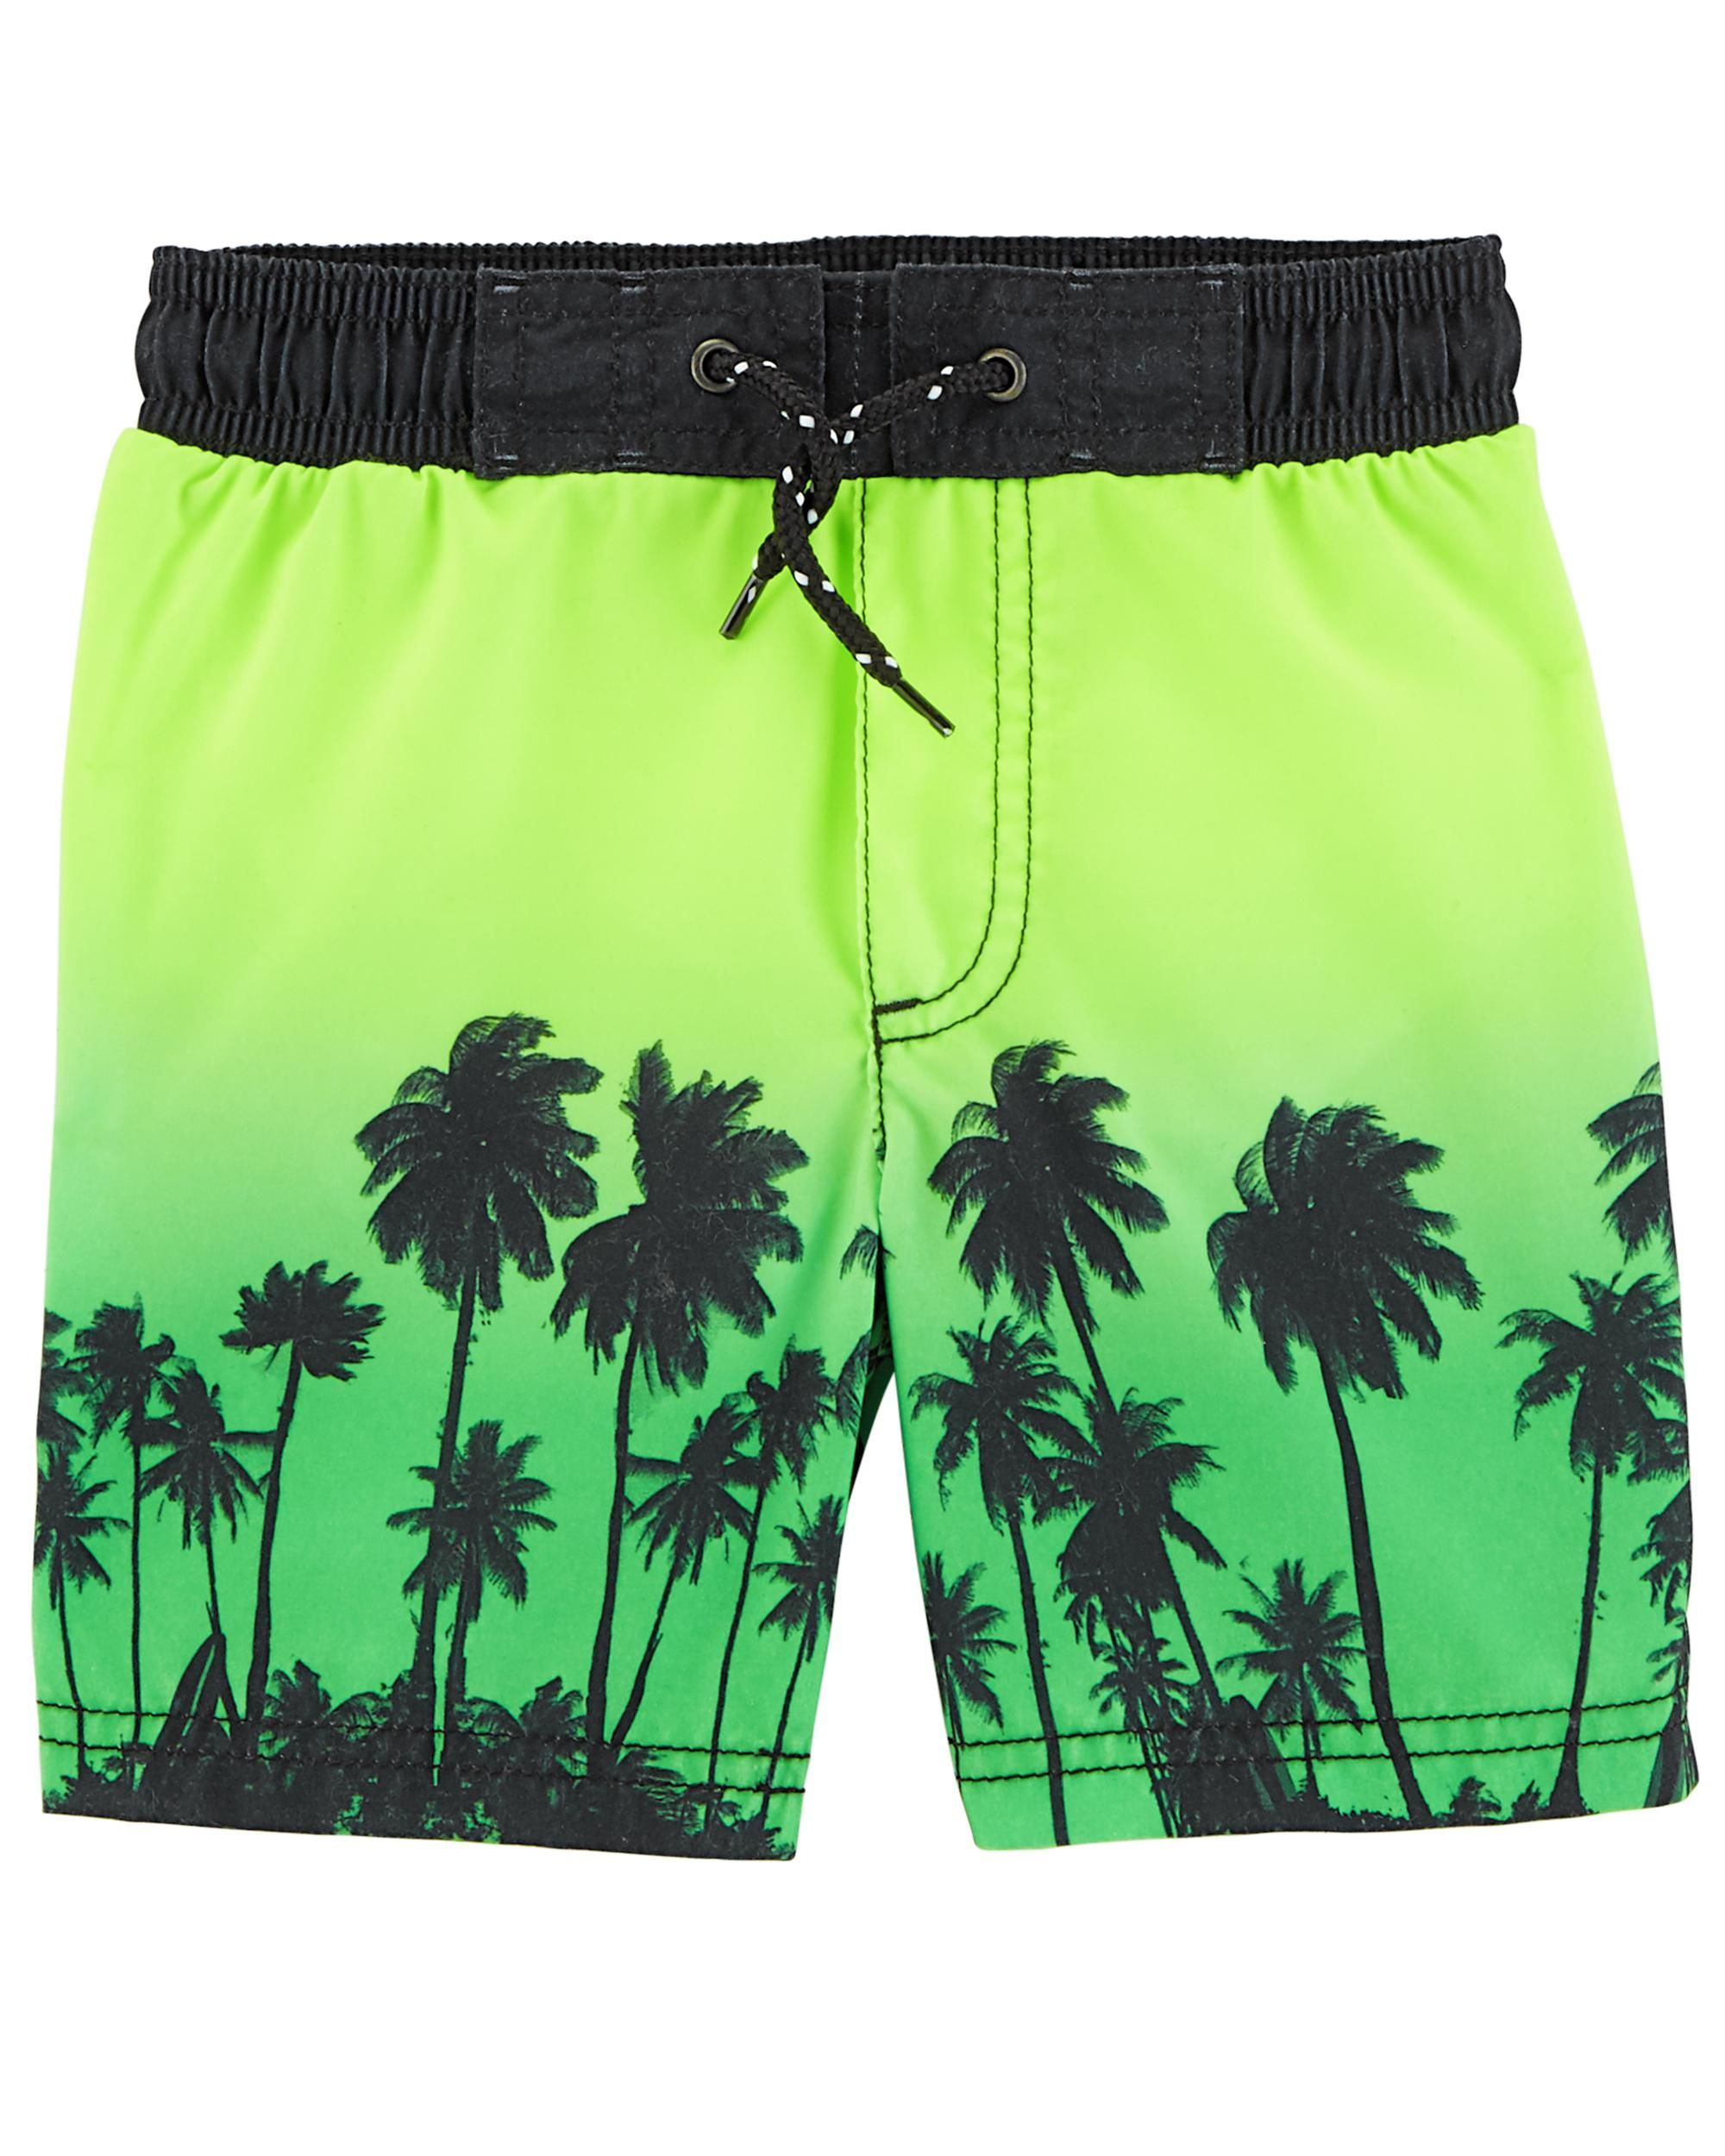 a960737805 Palm Tree Swim Trunks | SWIM | Boys swimwear, Baby boy swimwear ...